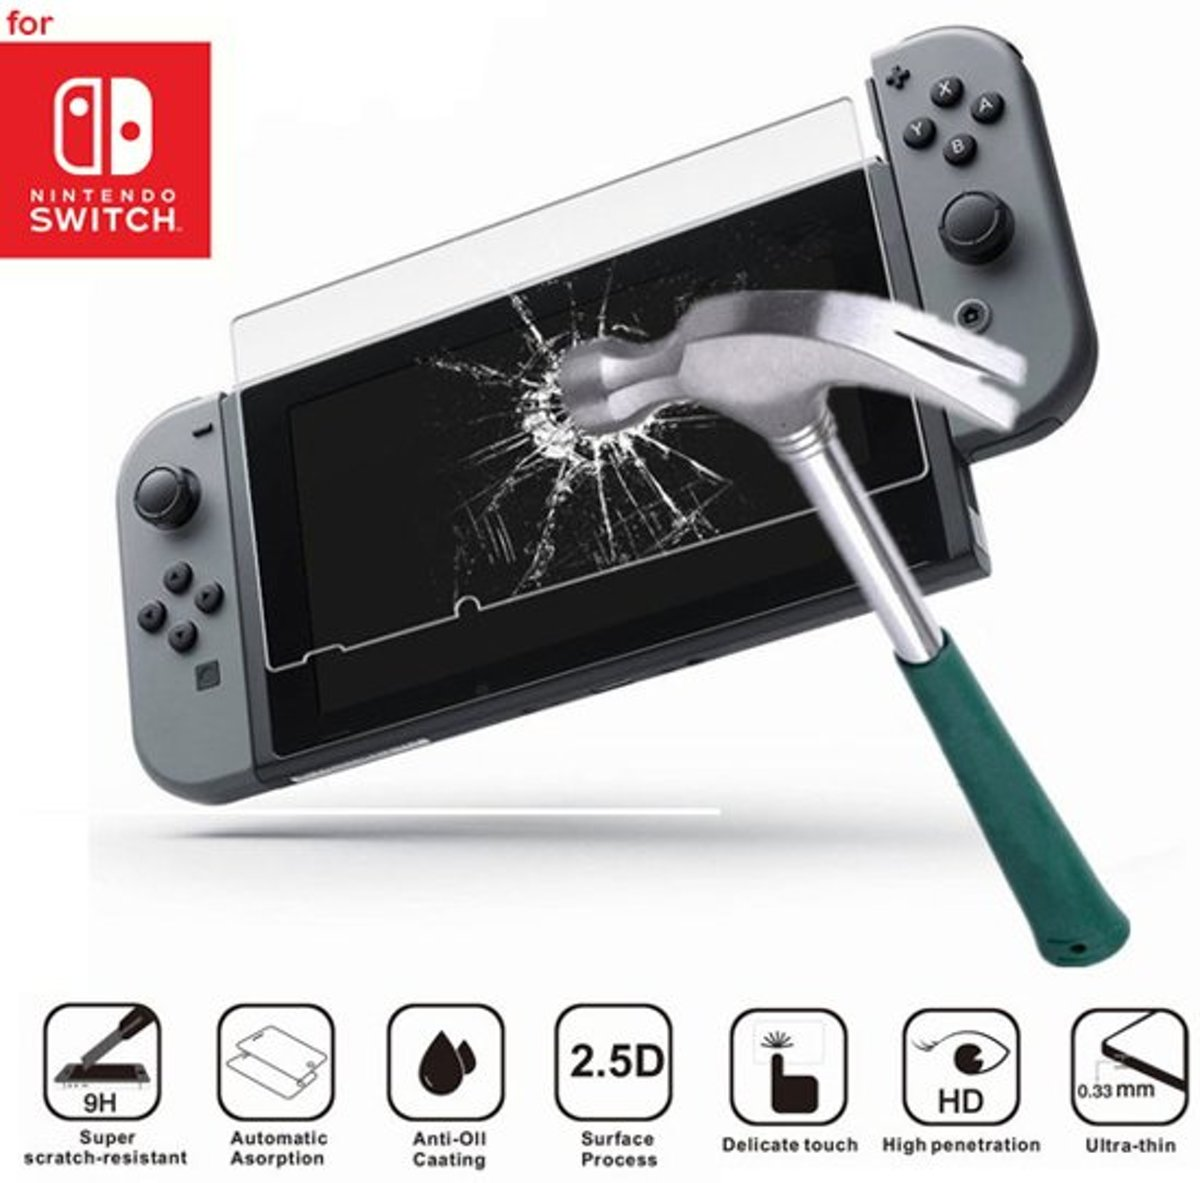 Nintendo Switch 9H Tempered Glass Screen Protector (Gehard glas)